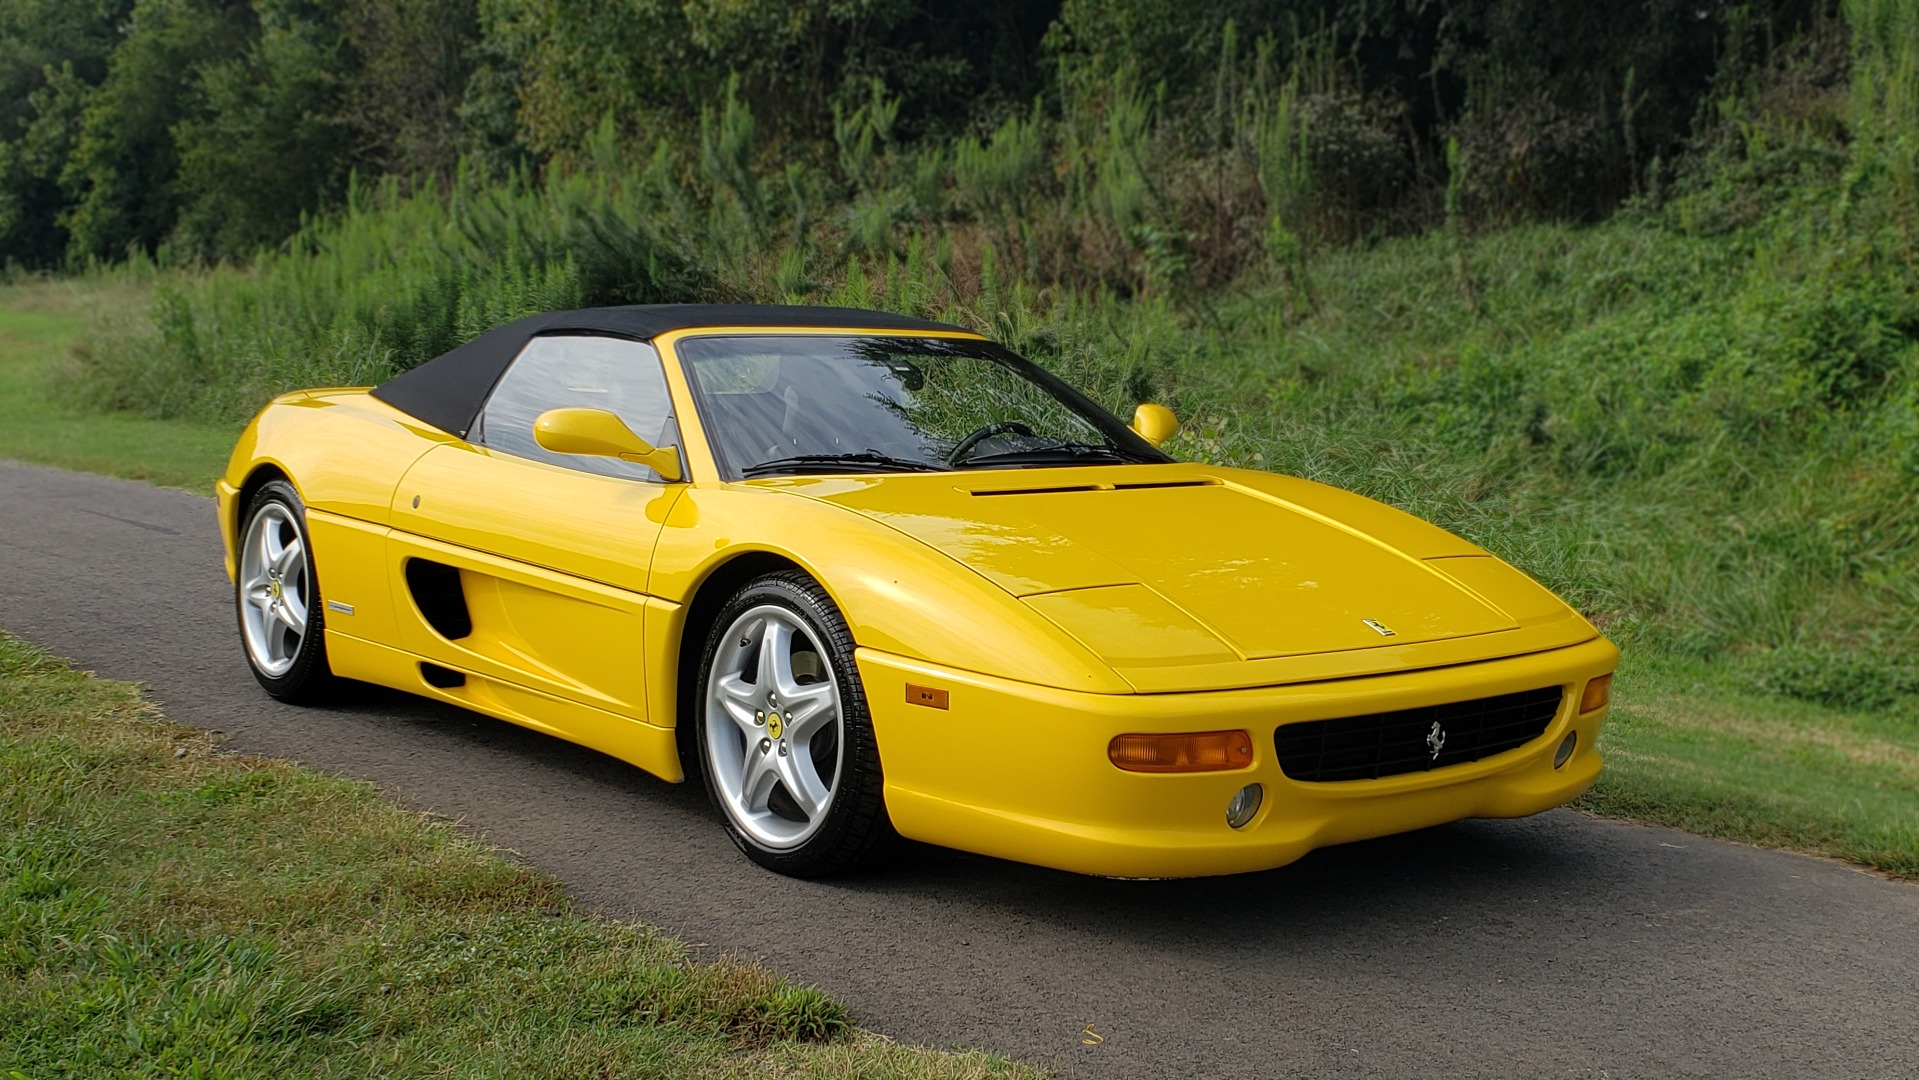 Used 1996 Ferrari F355 SPIDER / GATED 6-SPEED MANUAL / LOW MILES / NEW TIRES for sale $95,999 at Formula Imports in Charlotte NC 28227 4